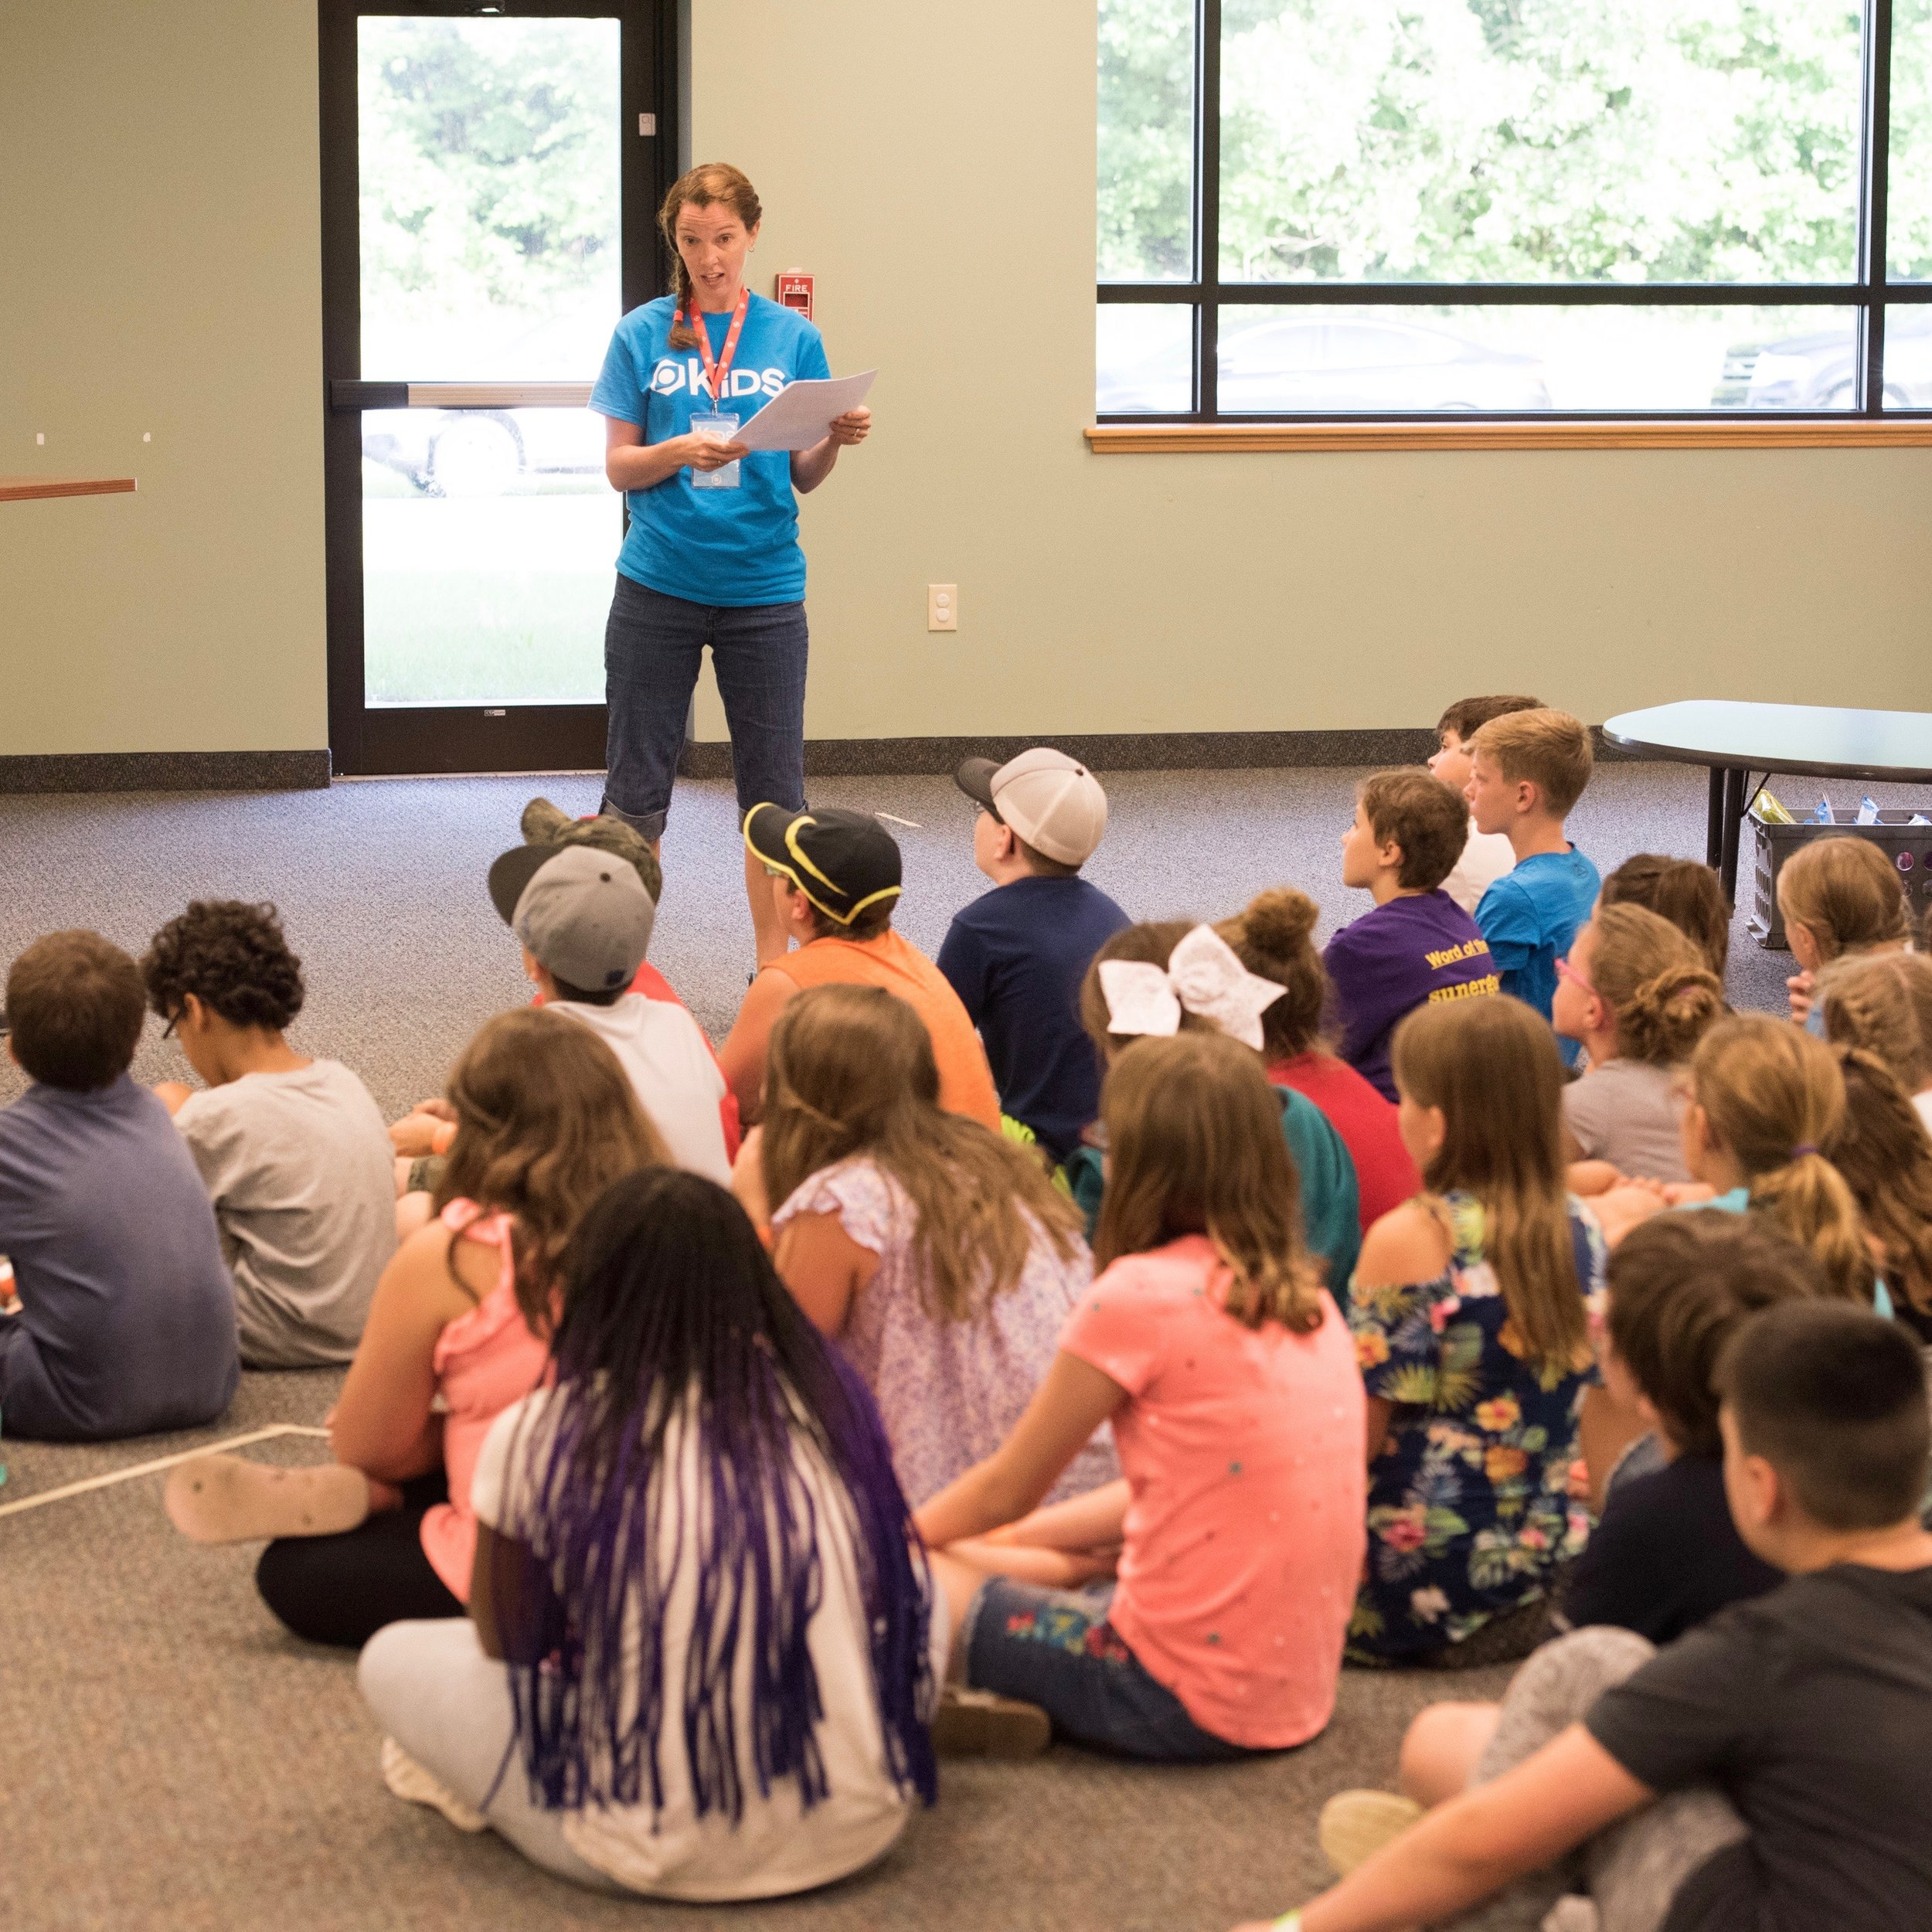 Church Partners raised over $10,000 for textbooks, Christmas gifts, and library resources through camp experiences and supply drives!